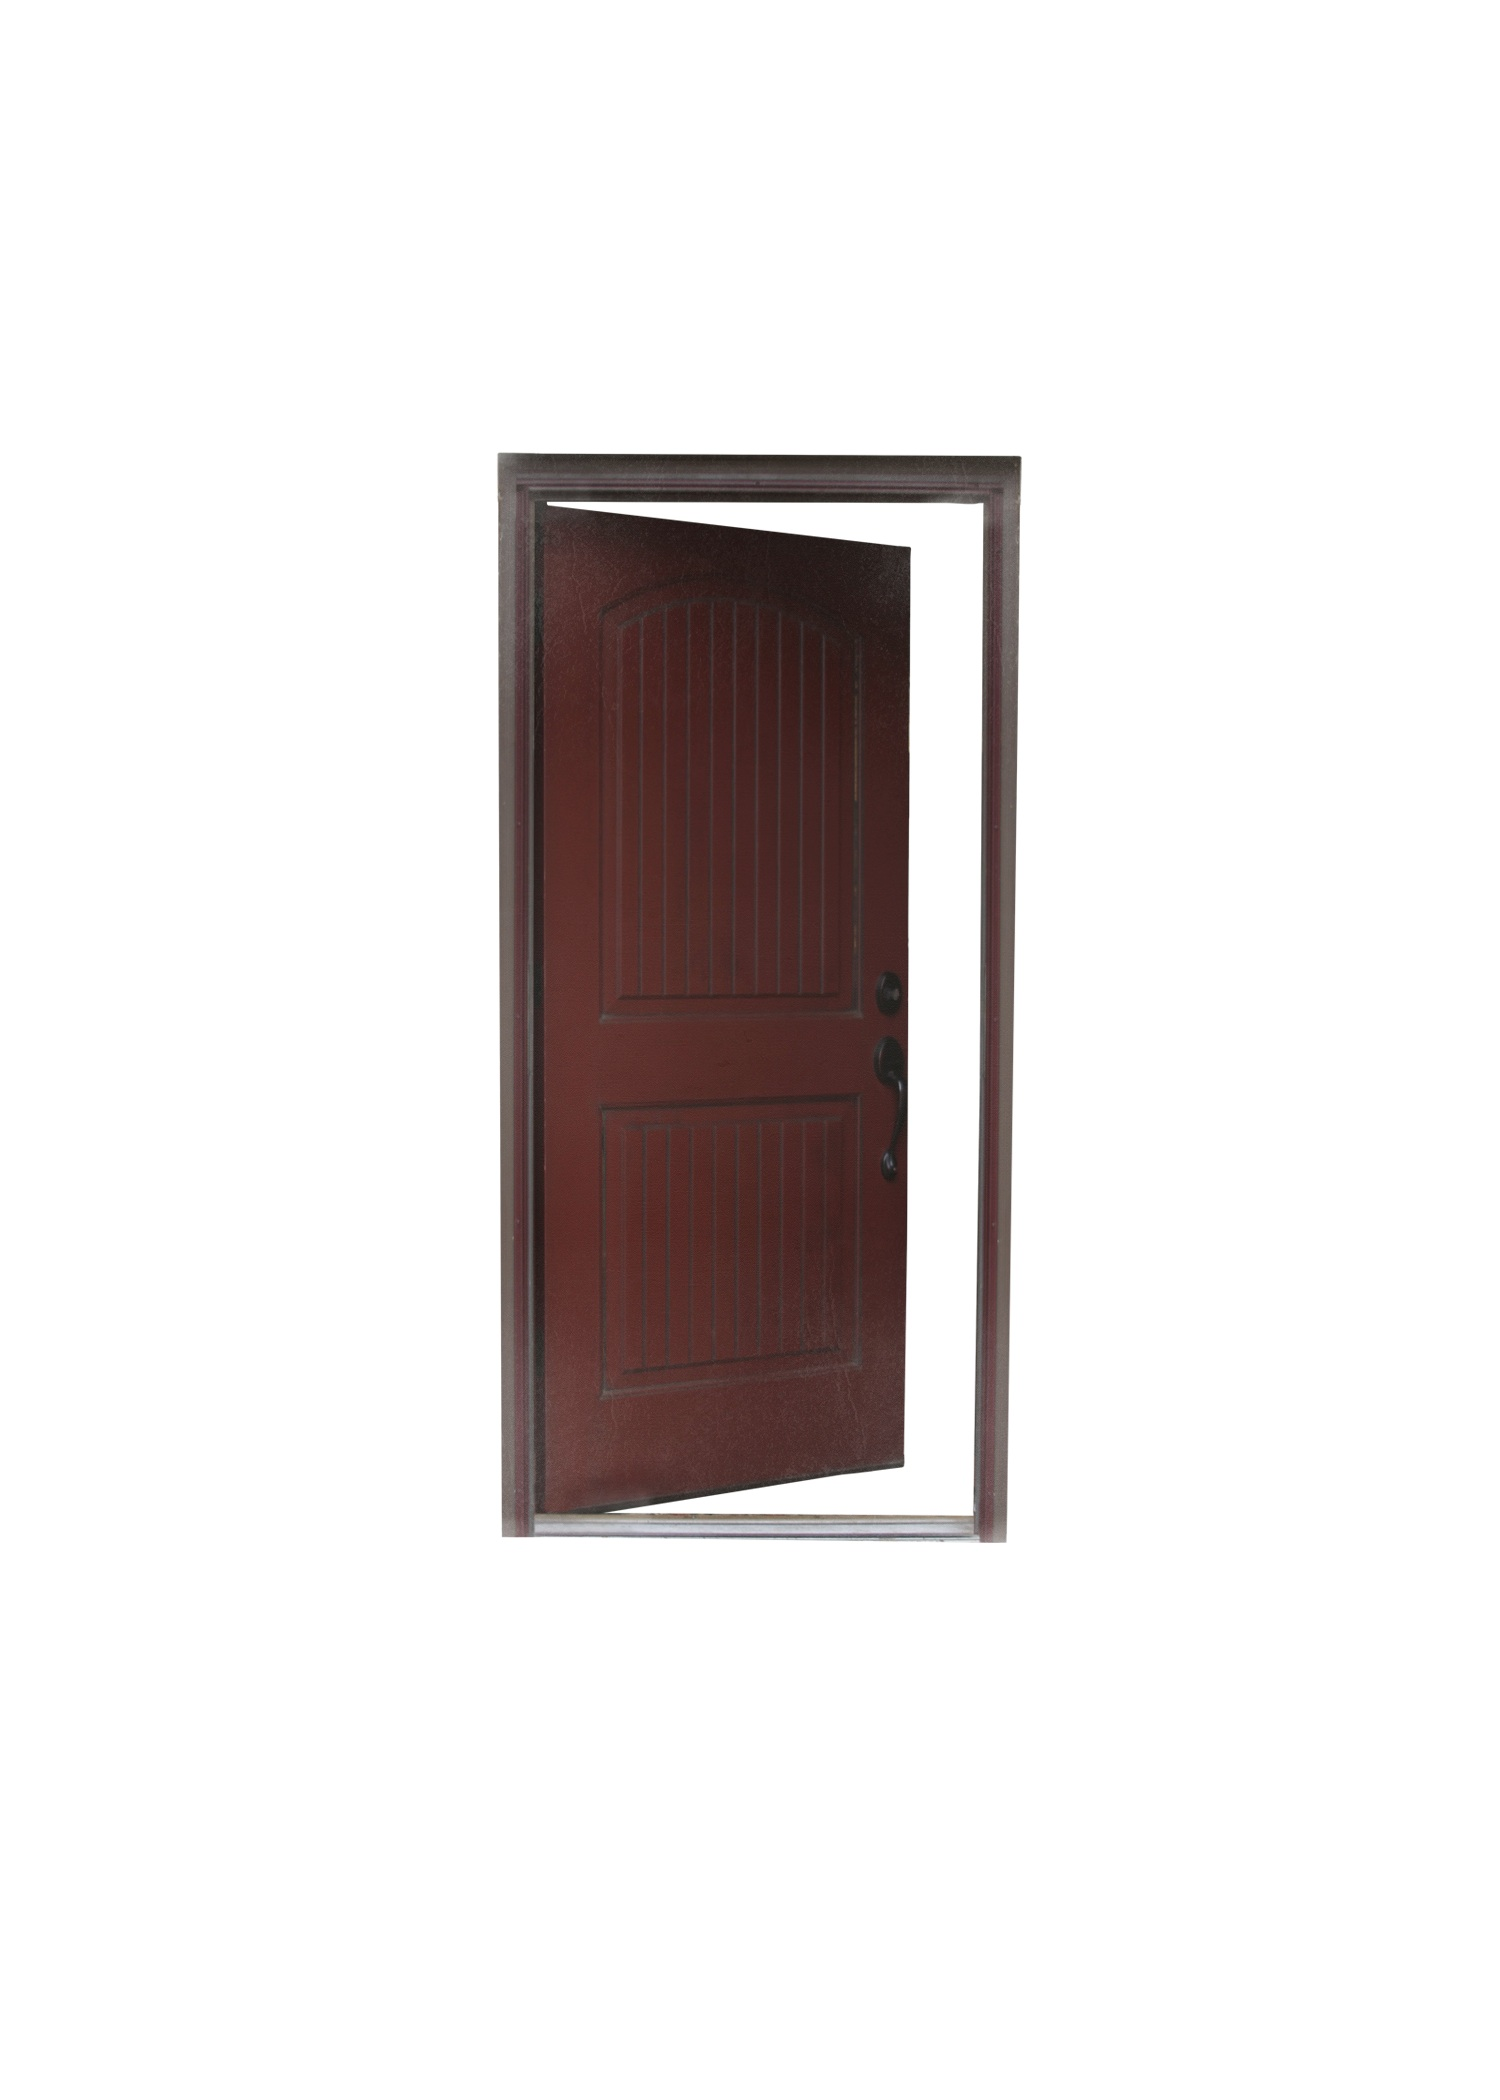 door png amp door iconquotquotscquot1quotstquotquotveryicon